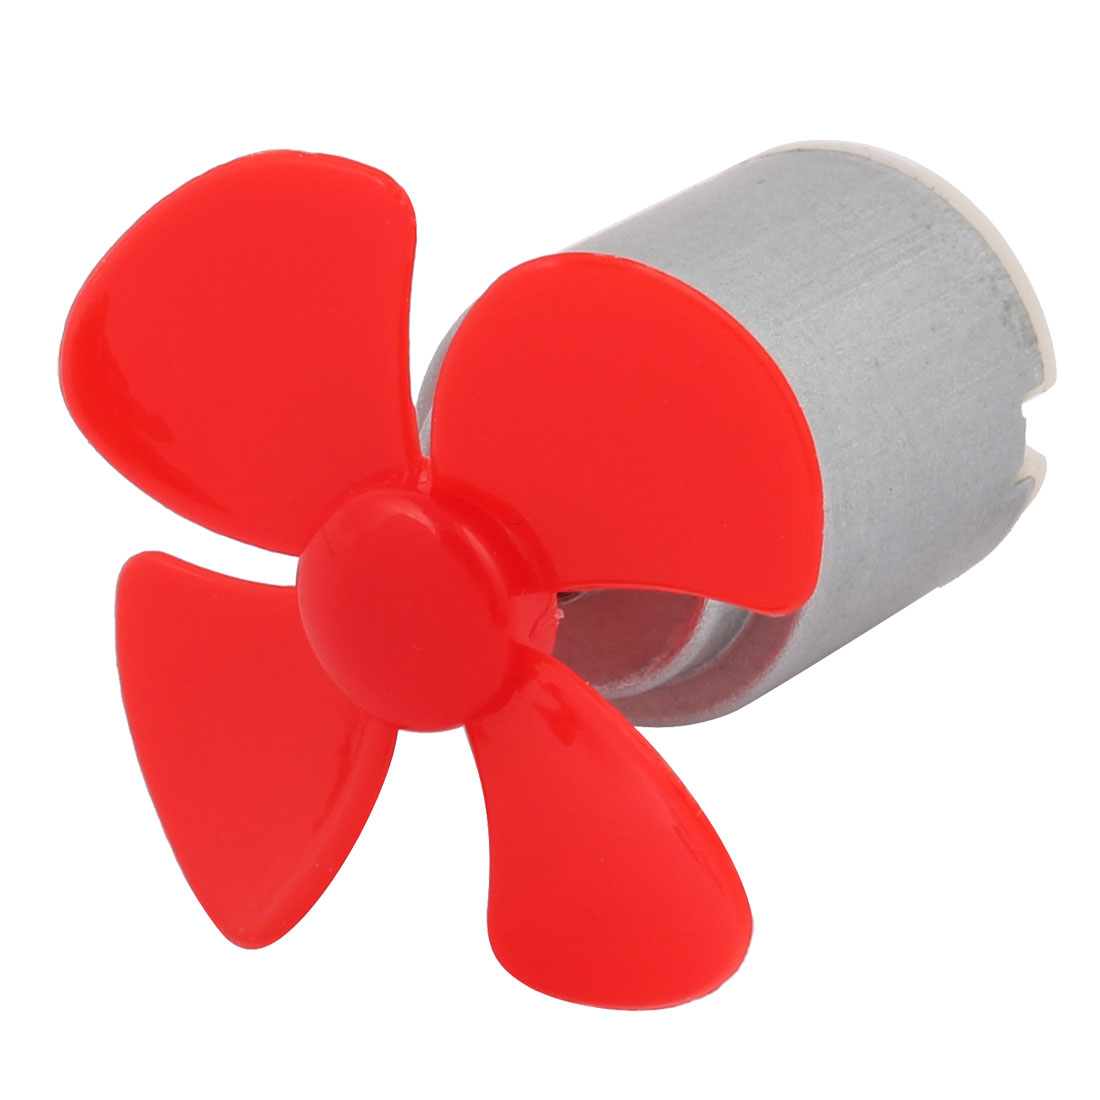 DC 3V 0.13A 21500RPM Strong Force Motor 4 Vanes 40mm Red Propeller for RC Aircraft